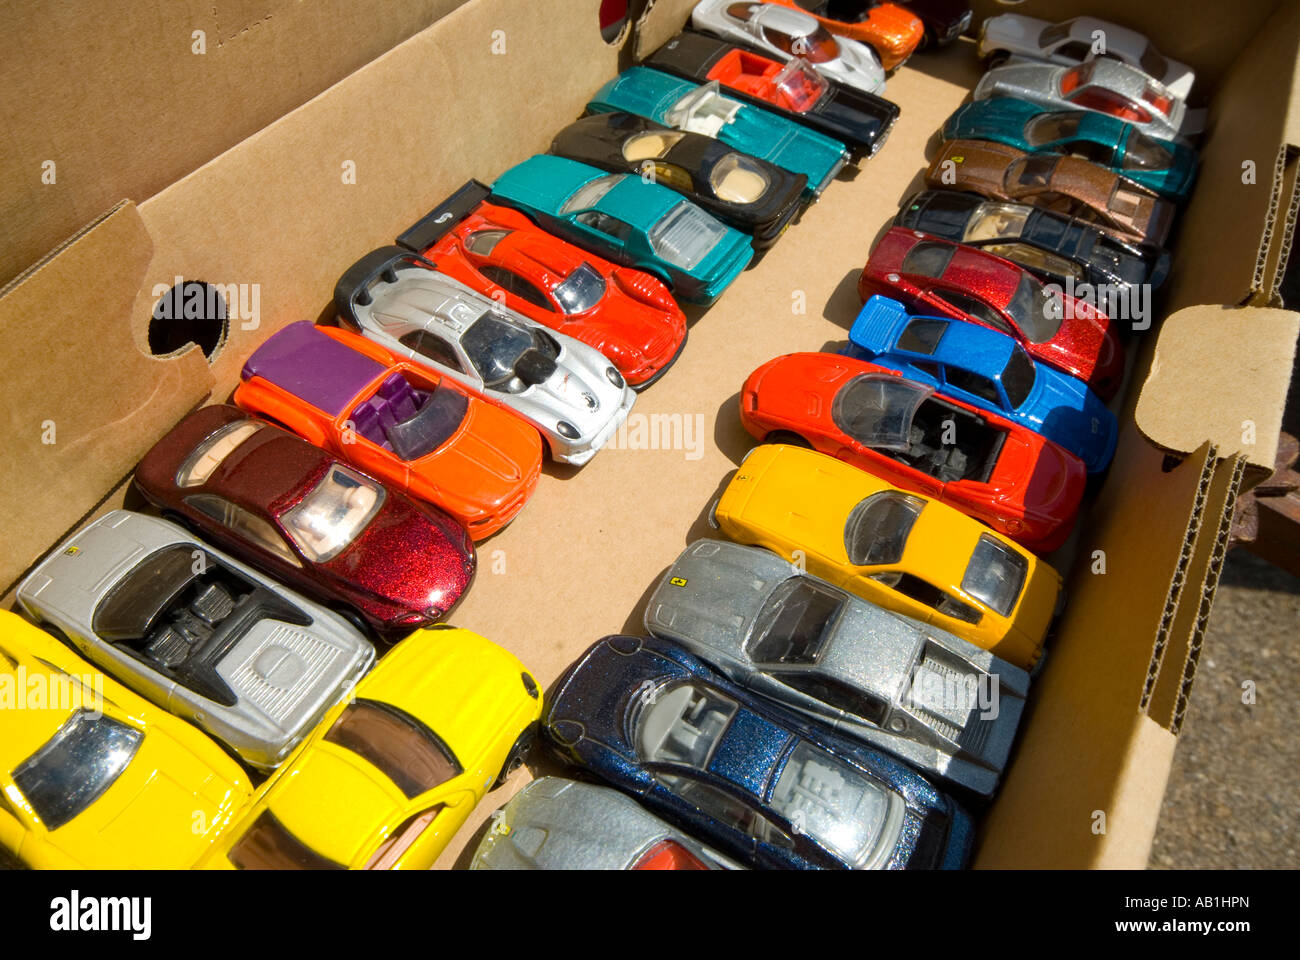 model cars in cardboard box - Stock Image